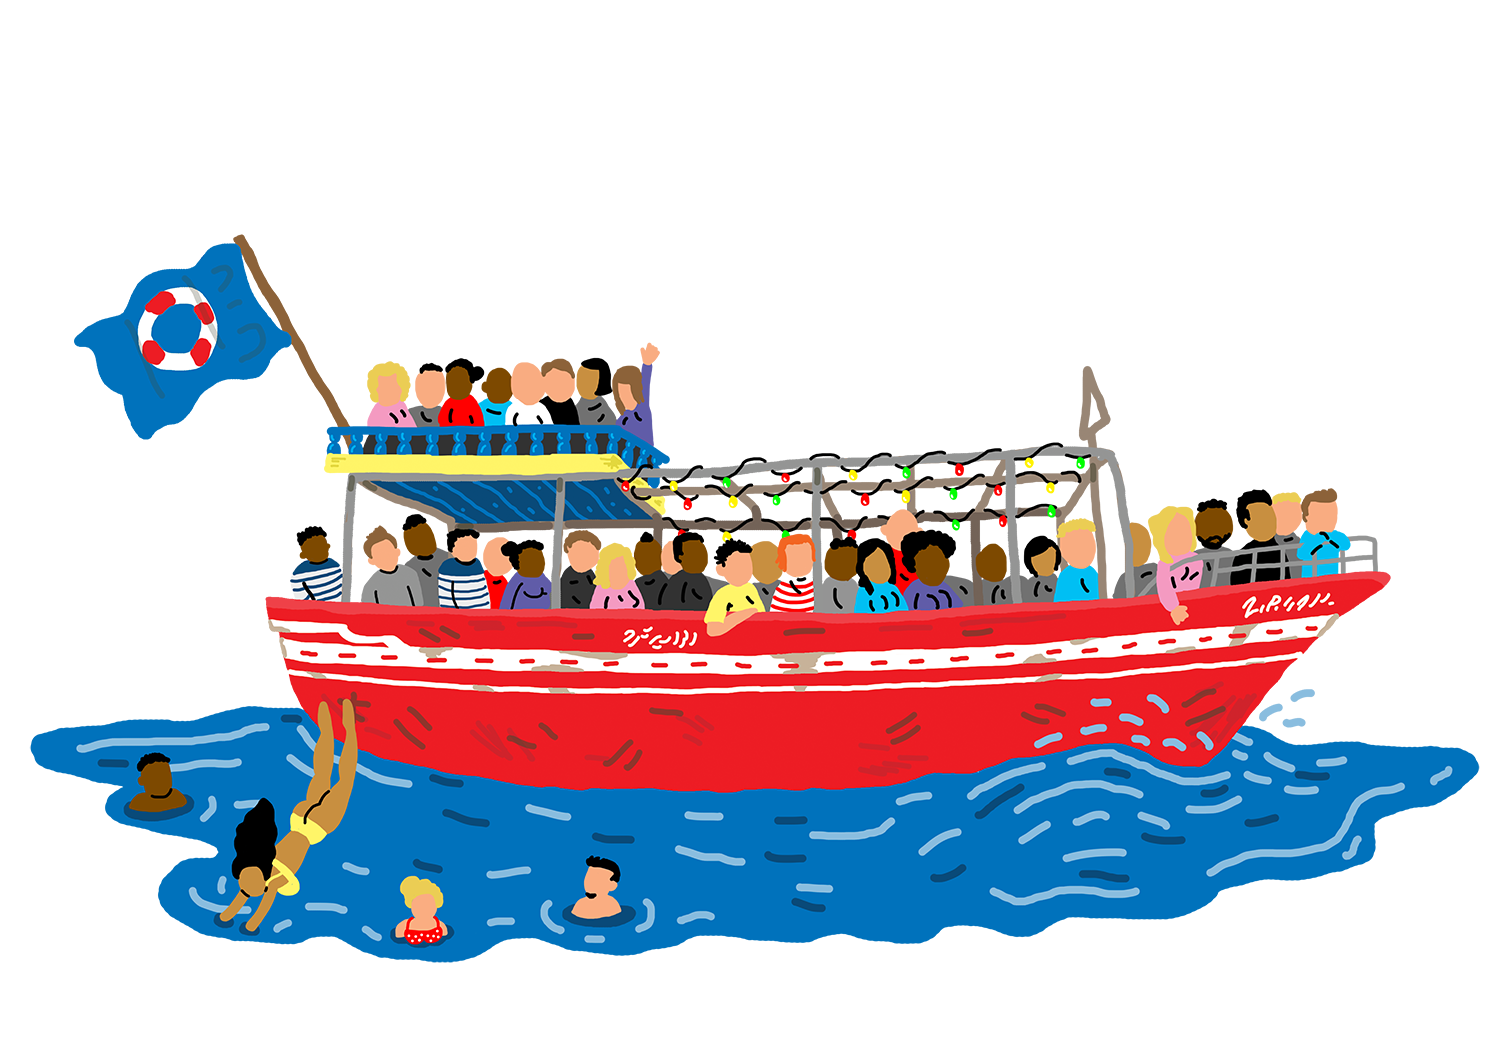 Boating clipart boat ride. Rederij lampedusa friday afternoons